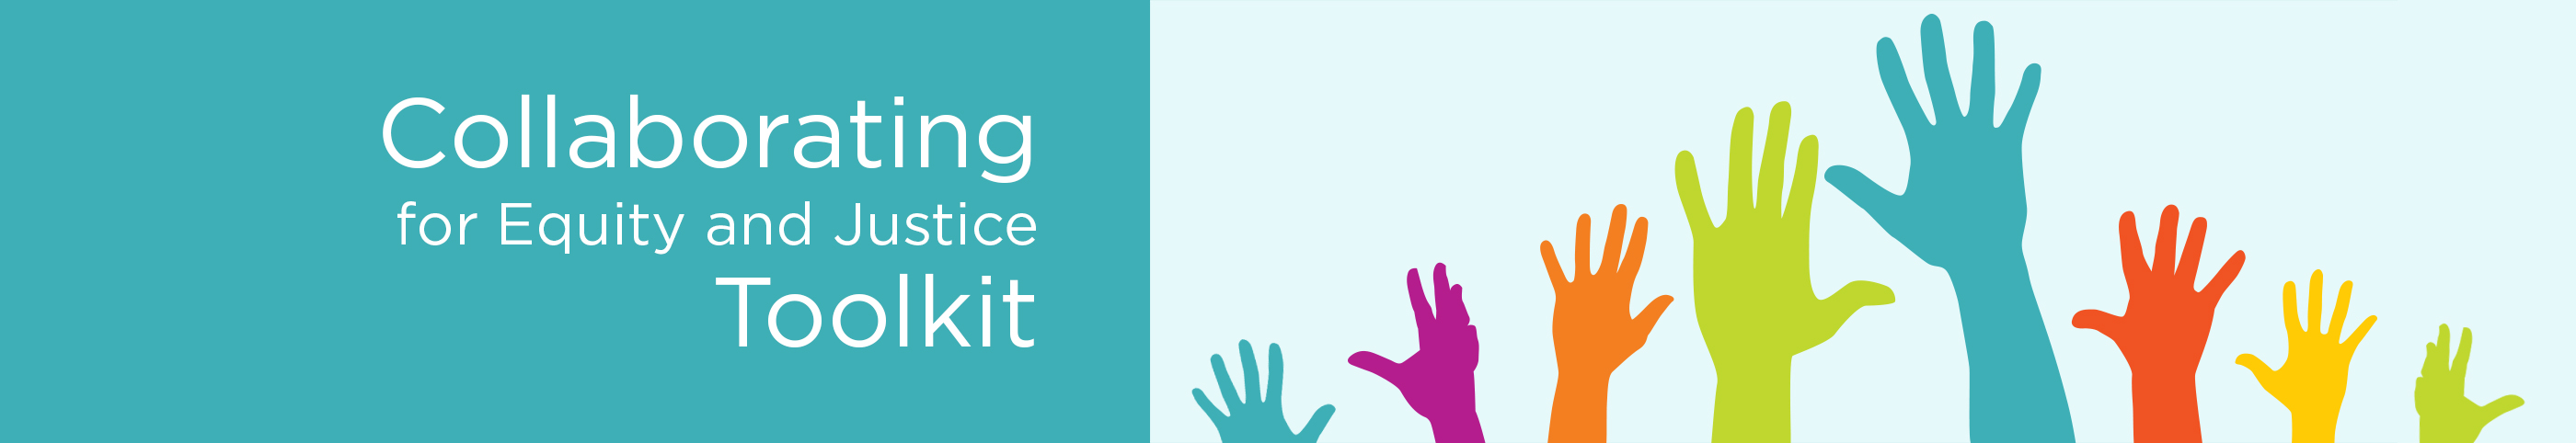 Collaborating for Equity and Justice Toolkit banner image with multicolored hands reaching upward.